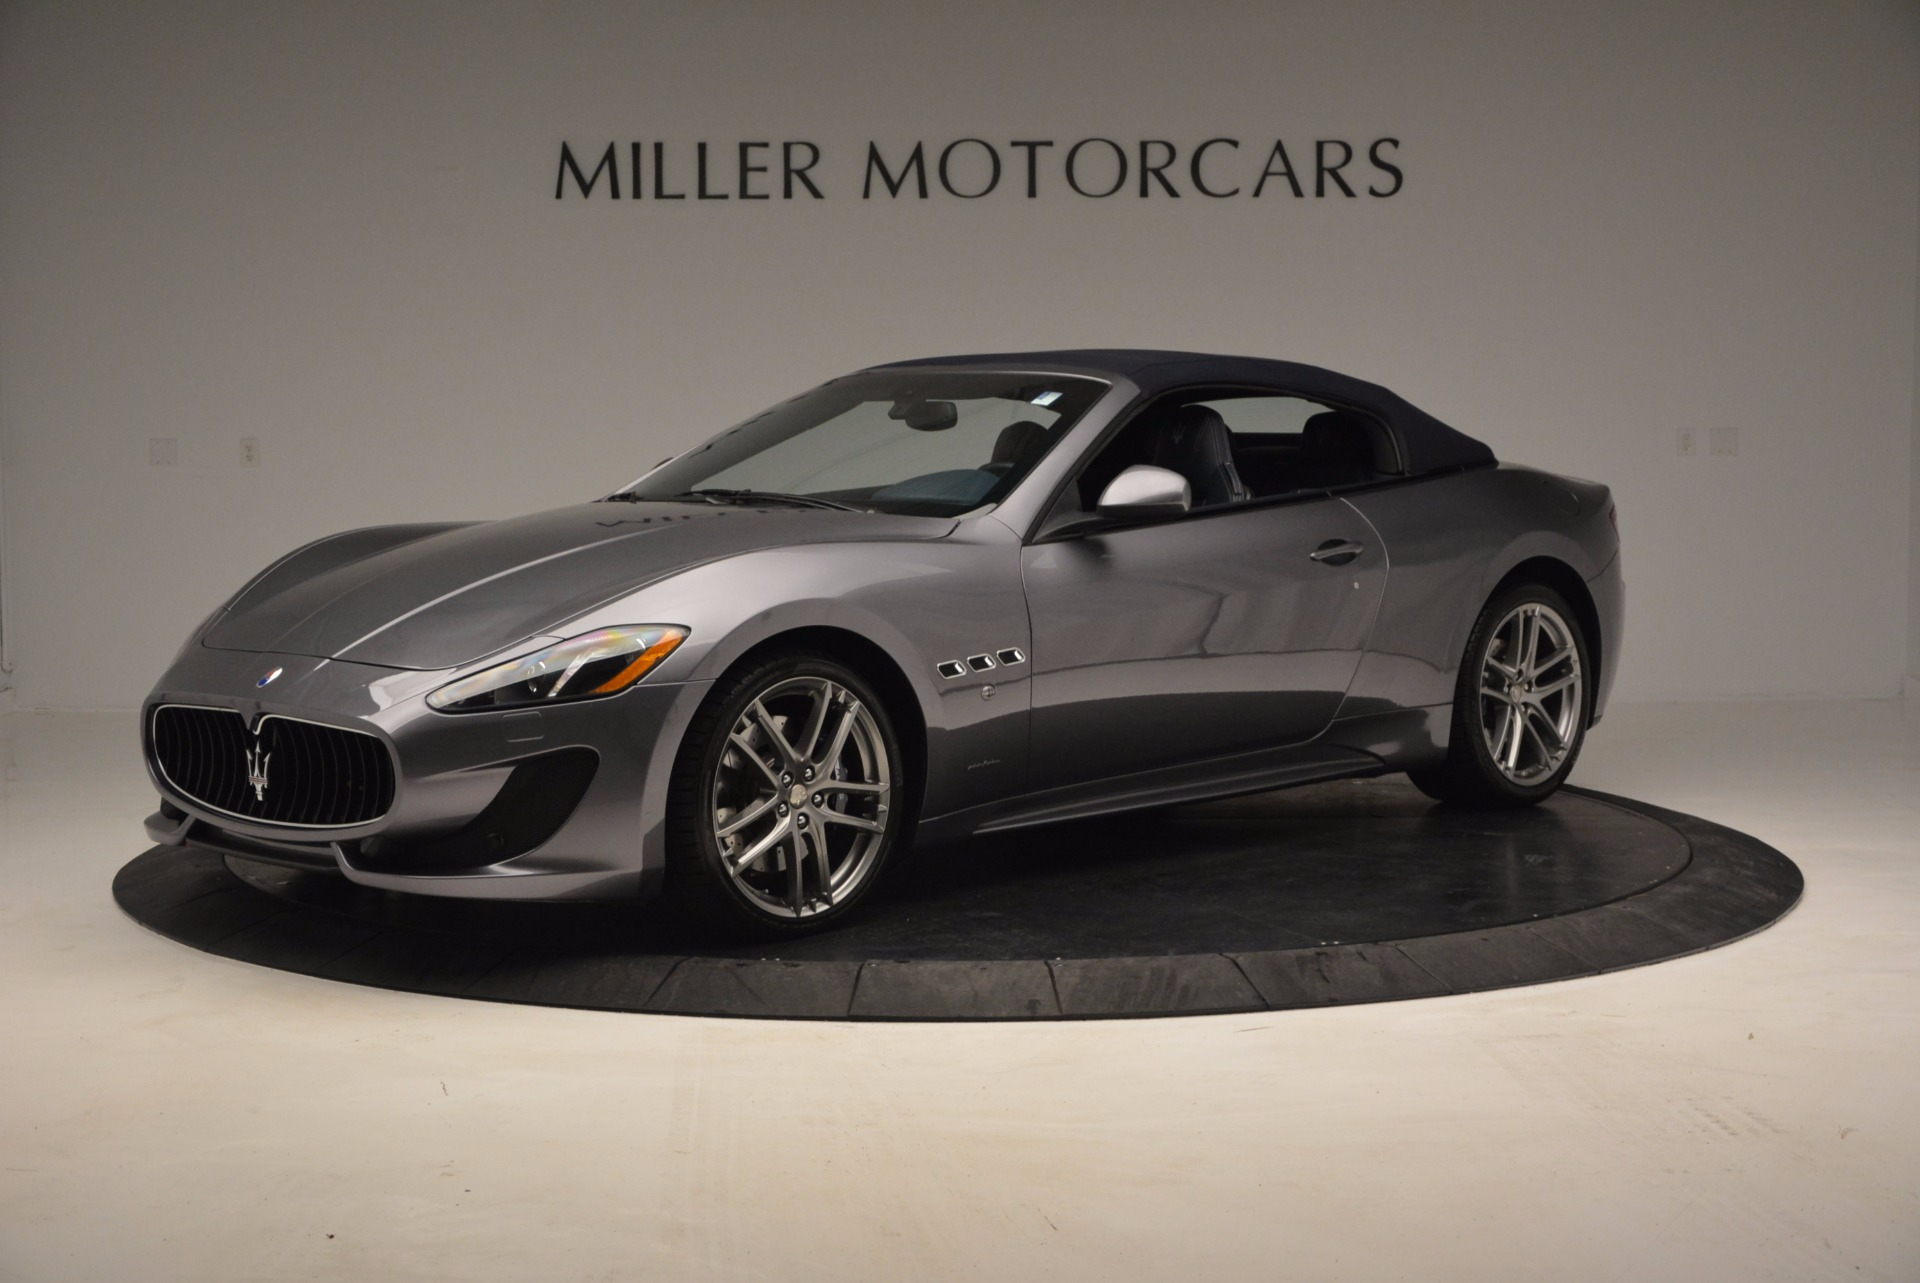 New 2017 Maserati GranTurismo Sport For Sale In Westport, CT 598_p12